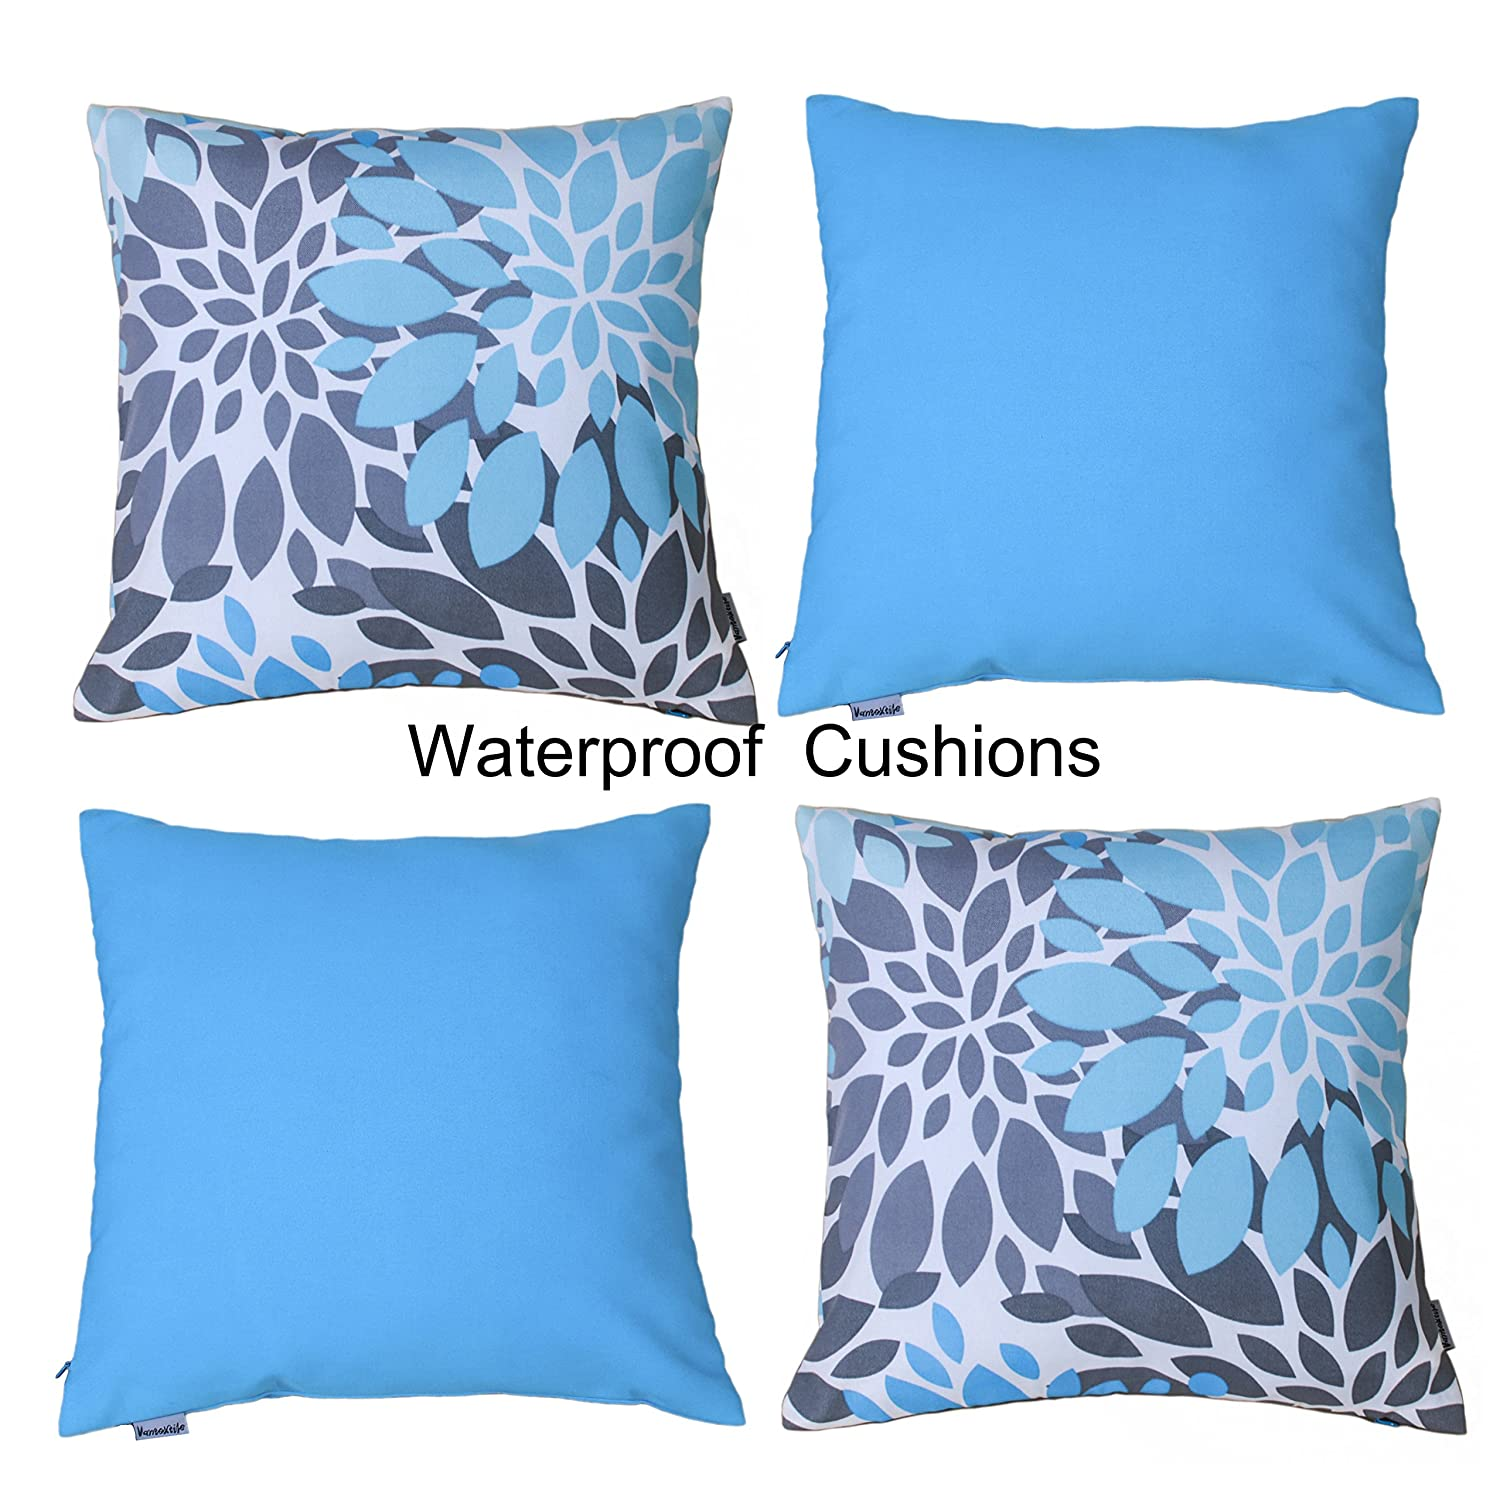 Insert Not Include Outdoor Waterproof Cushion Cover,18x18inch . Vantextile 4PCS Home Decor Cushion Cover